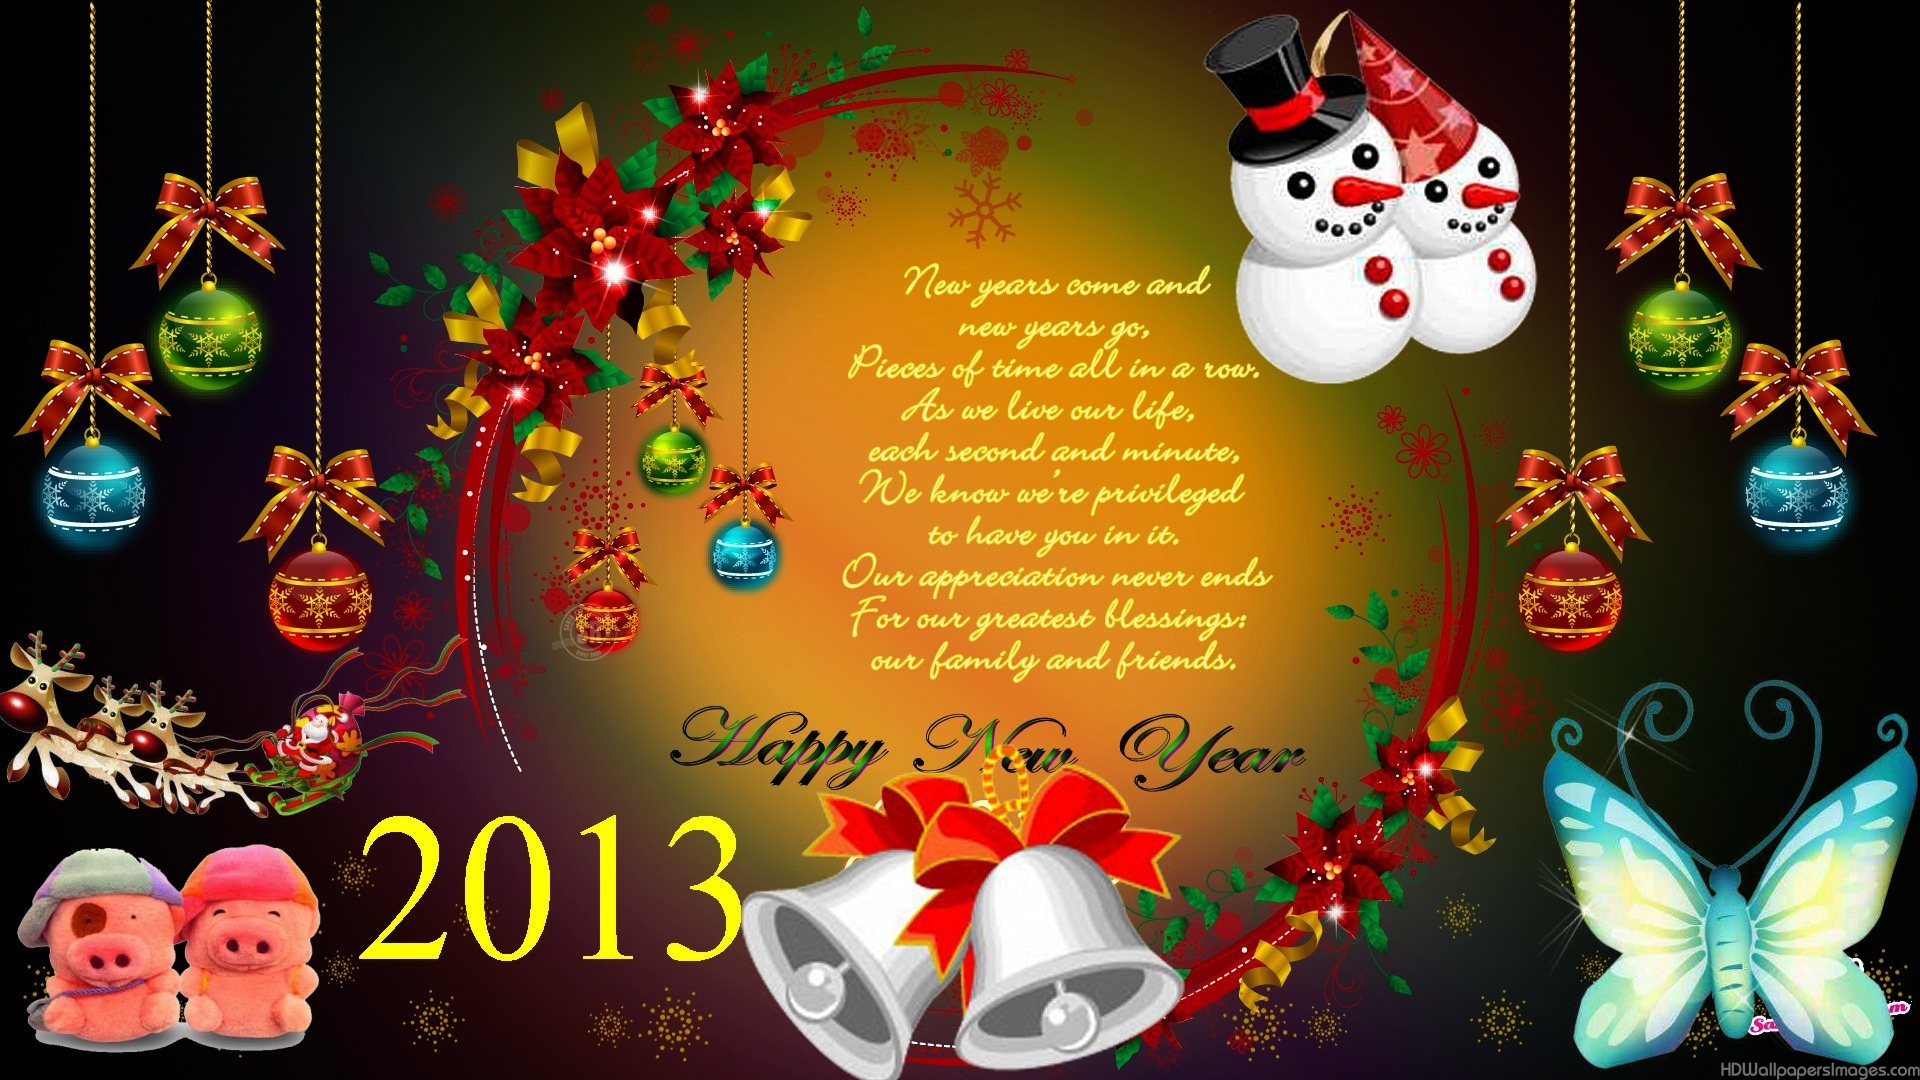 Download Happy New Year 2014 Wallpaper Hd Free - Christmas Card , HD Wallpaper & Backgrounds